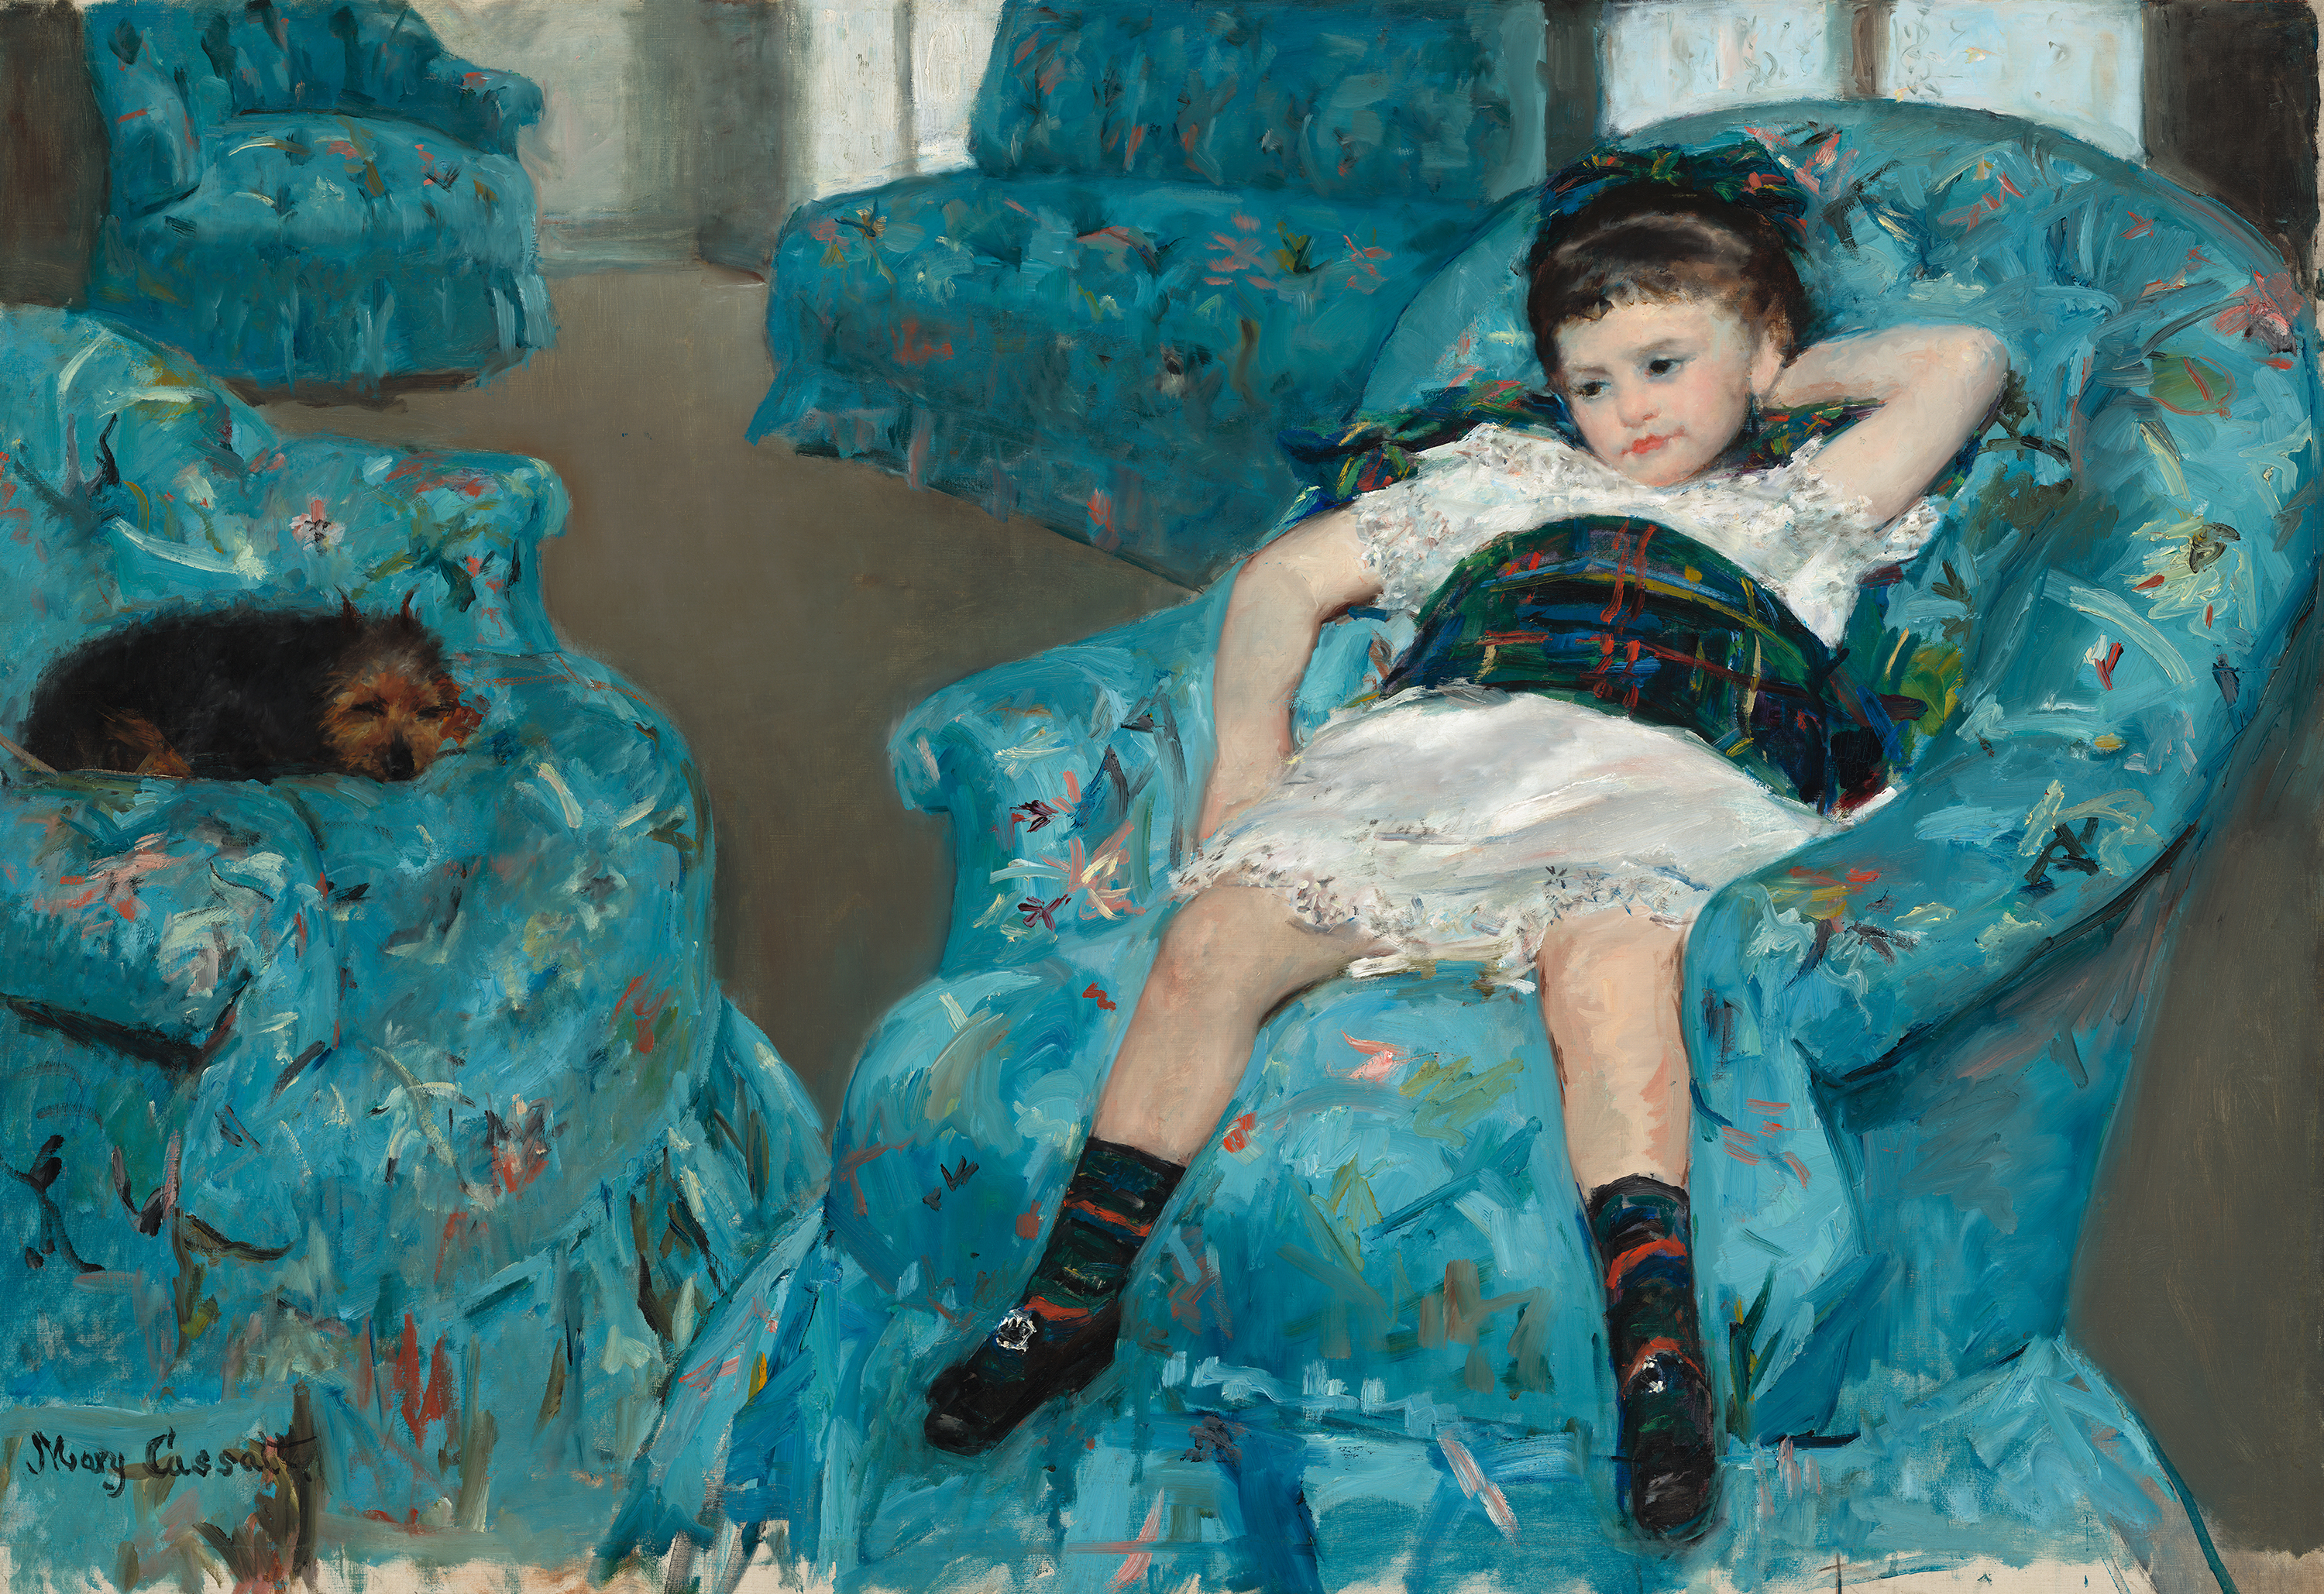 A Most Exquisite Exhibit: Degas/Cassatt at the National Gallery ...